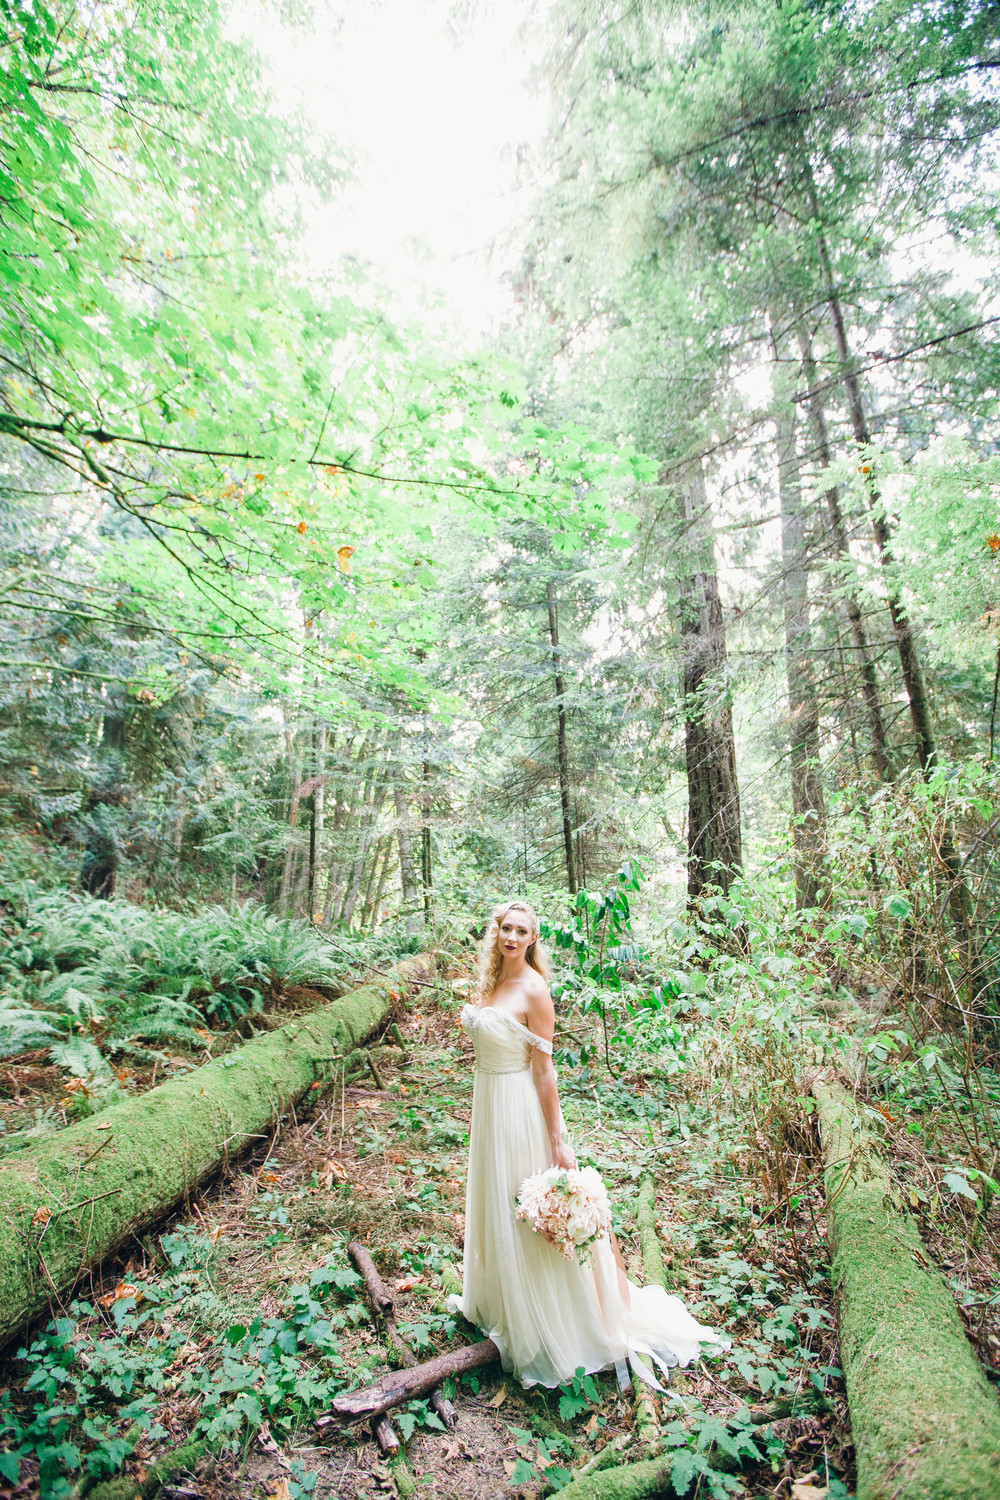 Courtney+Matt_Bellingham+Wedding_Seattle+Wedding+Photographer131.jpg